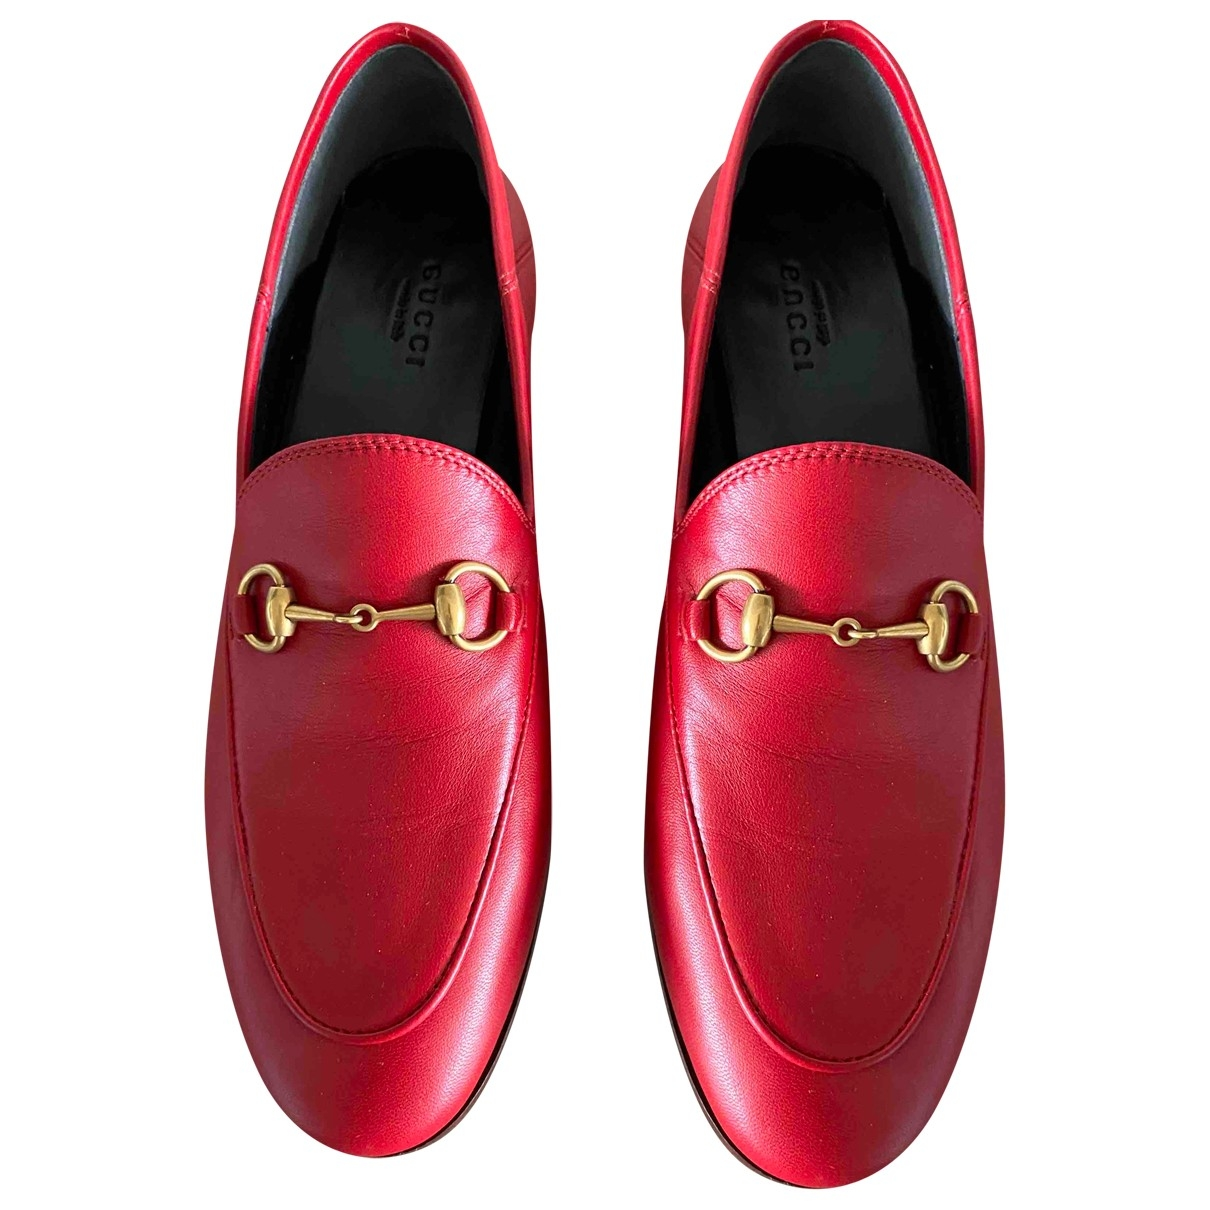 Gucci Brixton Red Leather Flats for Women 38.5 EU